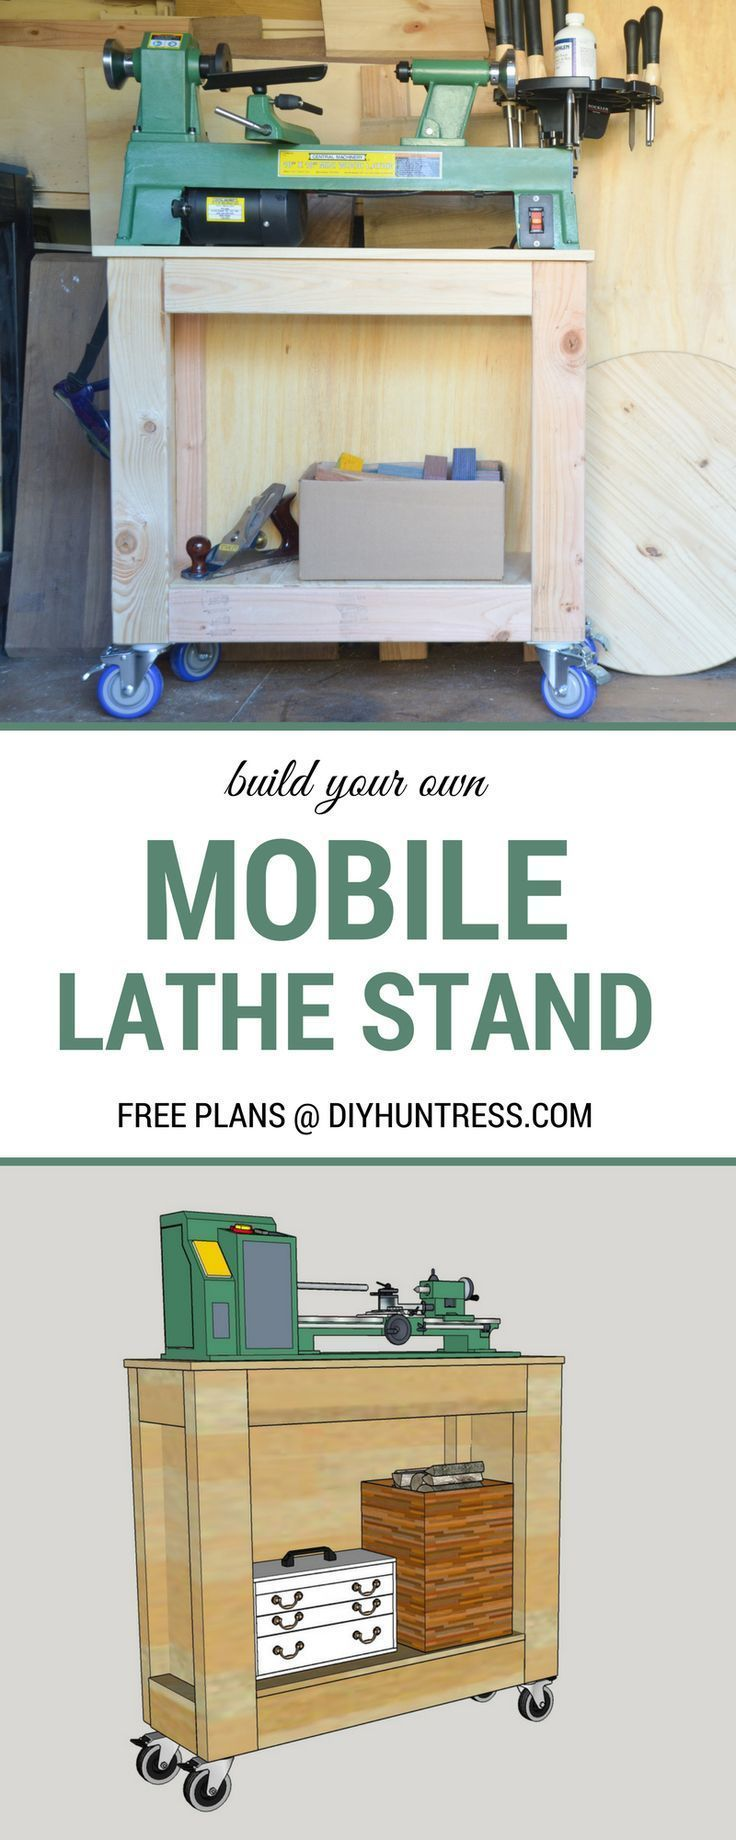 DIY Woodworking Ideas Free Woodworking Plans - Build a Mobile Lathe Stand!